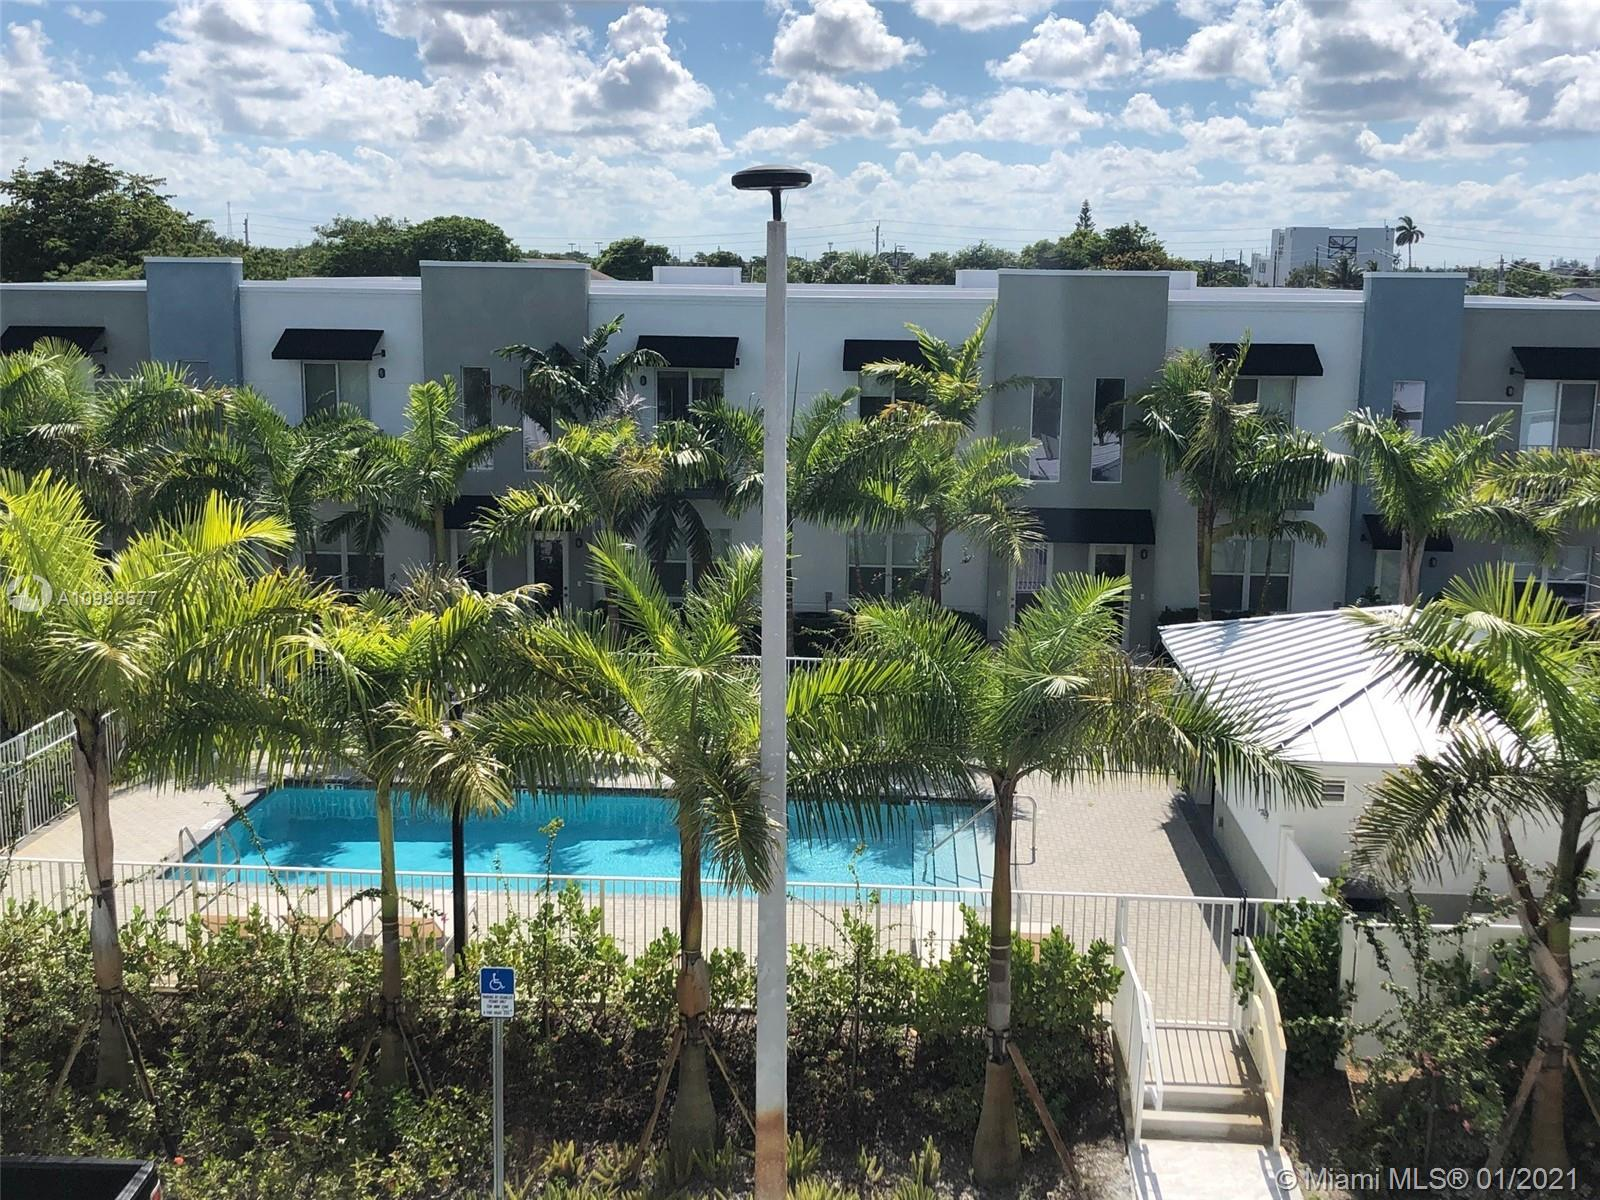 For individuals or for investors. Buy 1 unit or buy the whole building, 6 units. Best building in Urban Village, located right in front of the swimming pool. Newer townhome (built in 2017) in the middle of Oakland Park Culinary and Arts District. Modern contemporary design. 9 foot ceiling, stainless steel appliances, Washer/dryer in unit. Ceramic and wood floors, 1,225 square feet under air, 2 master bedrooms, 2.5 baths, 2 cars garage. Pets welcome, private dog/pet park. No RV/Truck, no boat or trailers. Use of garage mandatory. 24 hours notice to show appreciated. See Brokers Remarks